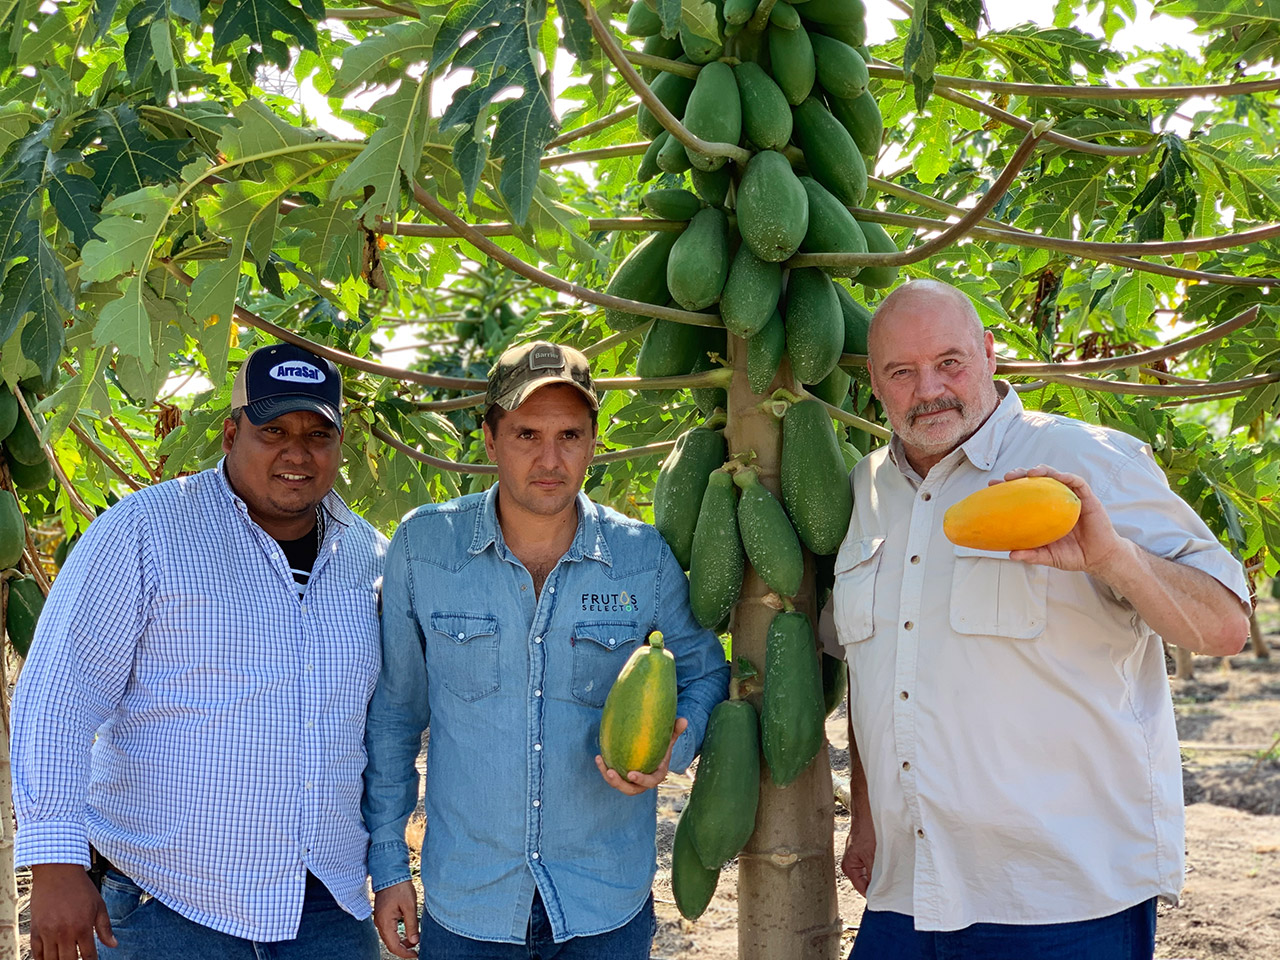 Papaya farmers in Veracruz